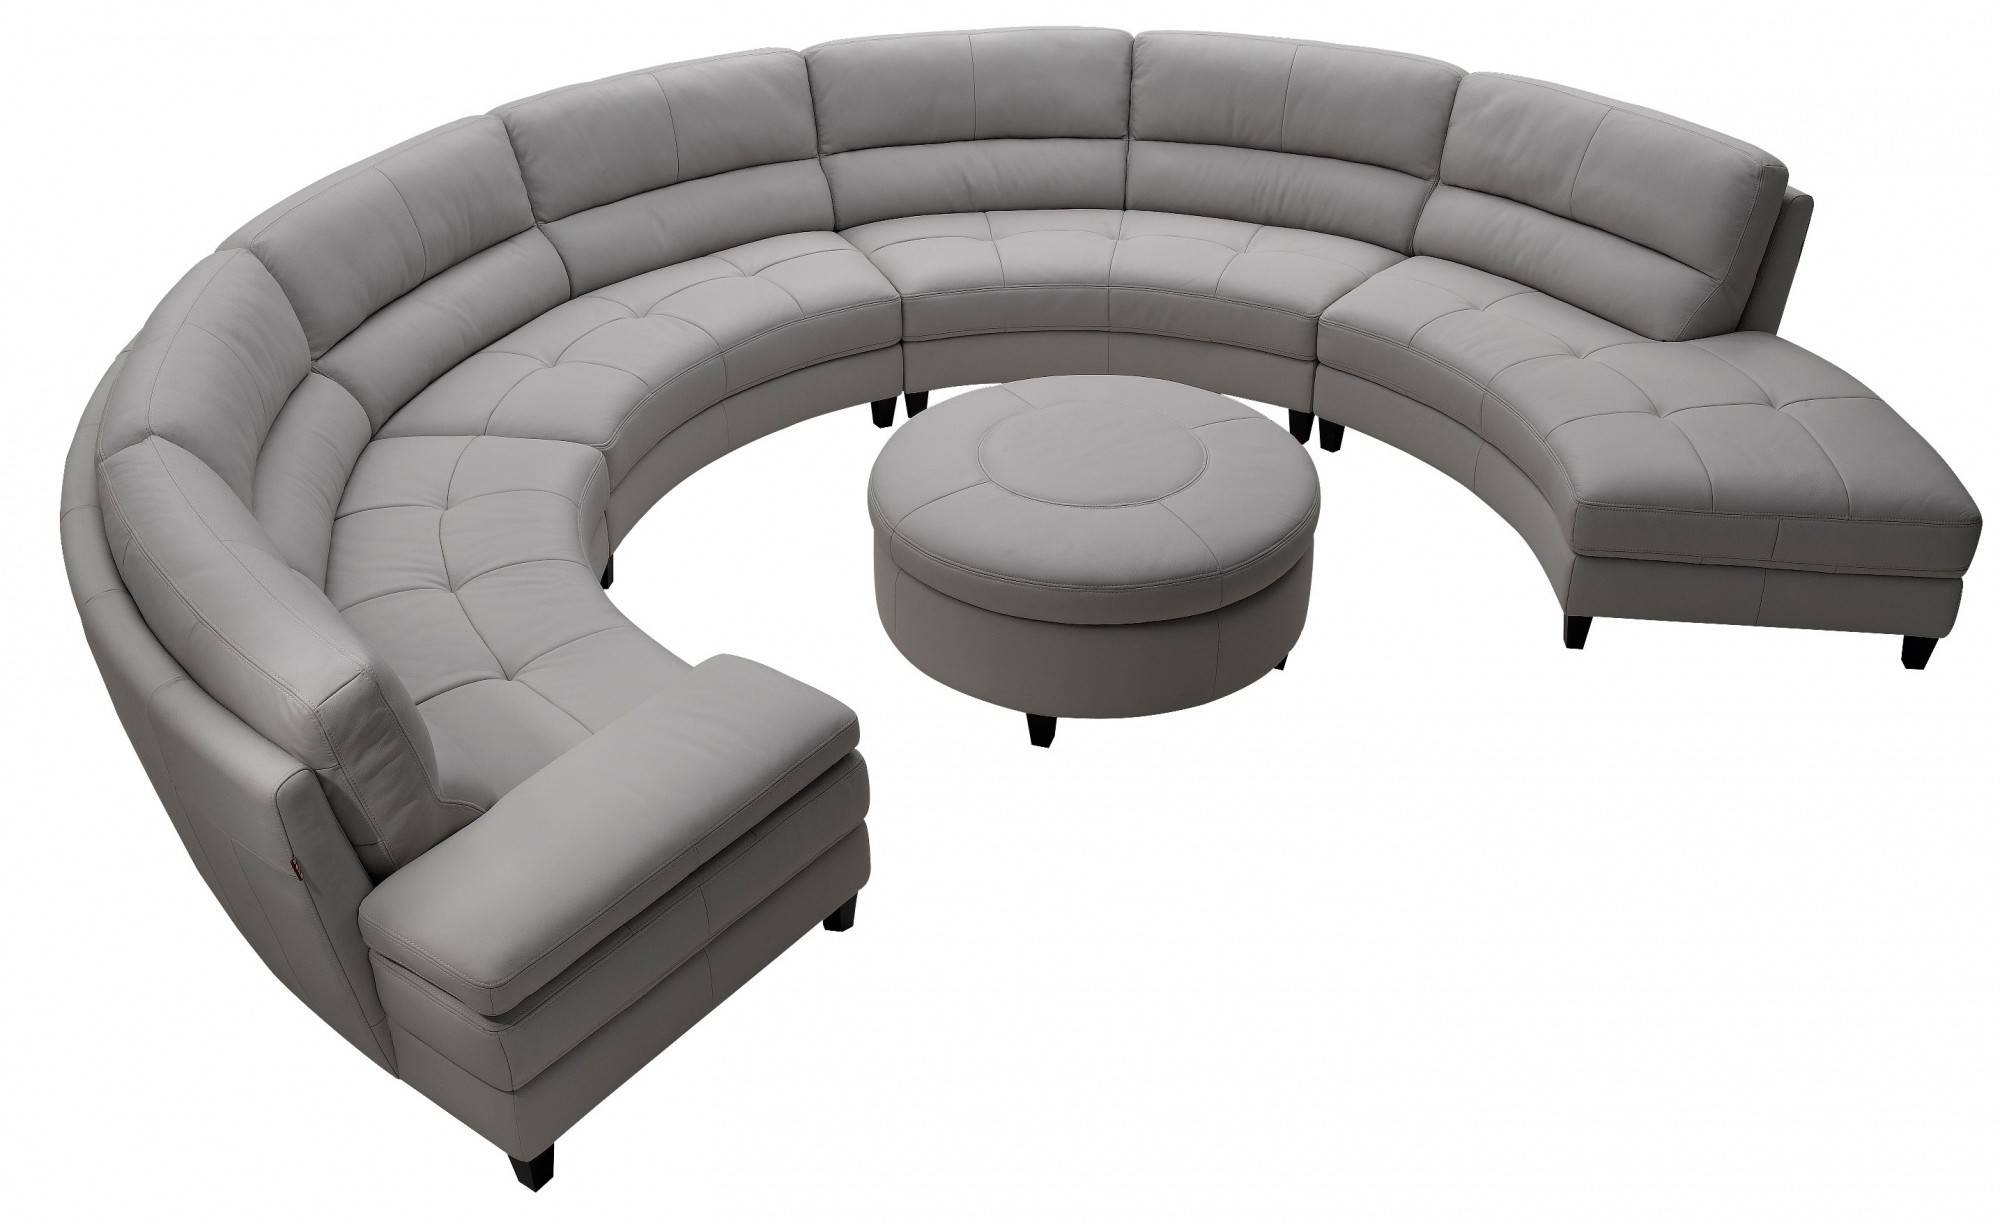 Furniture: Couch Sectional | Sofa With Chaise Lounge | Round Couches inside Round Sofas (Image 7 of 30)